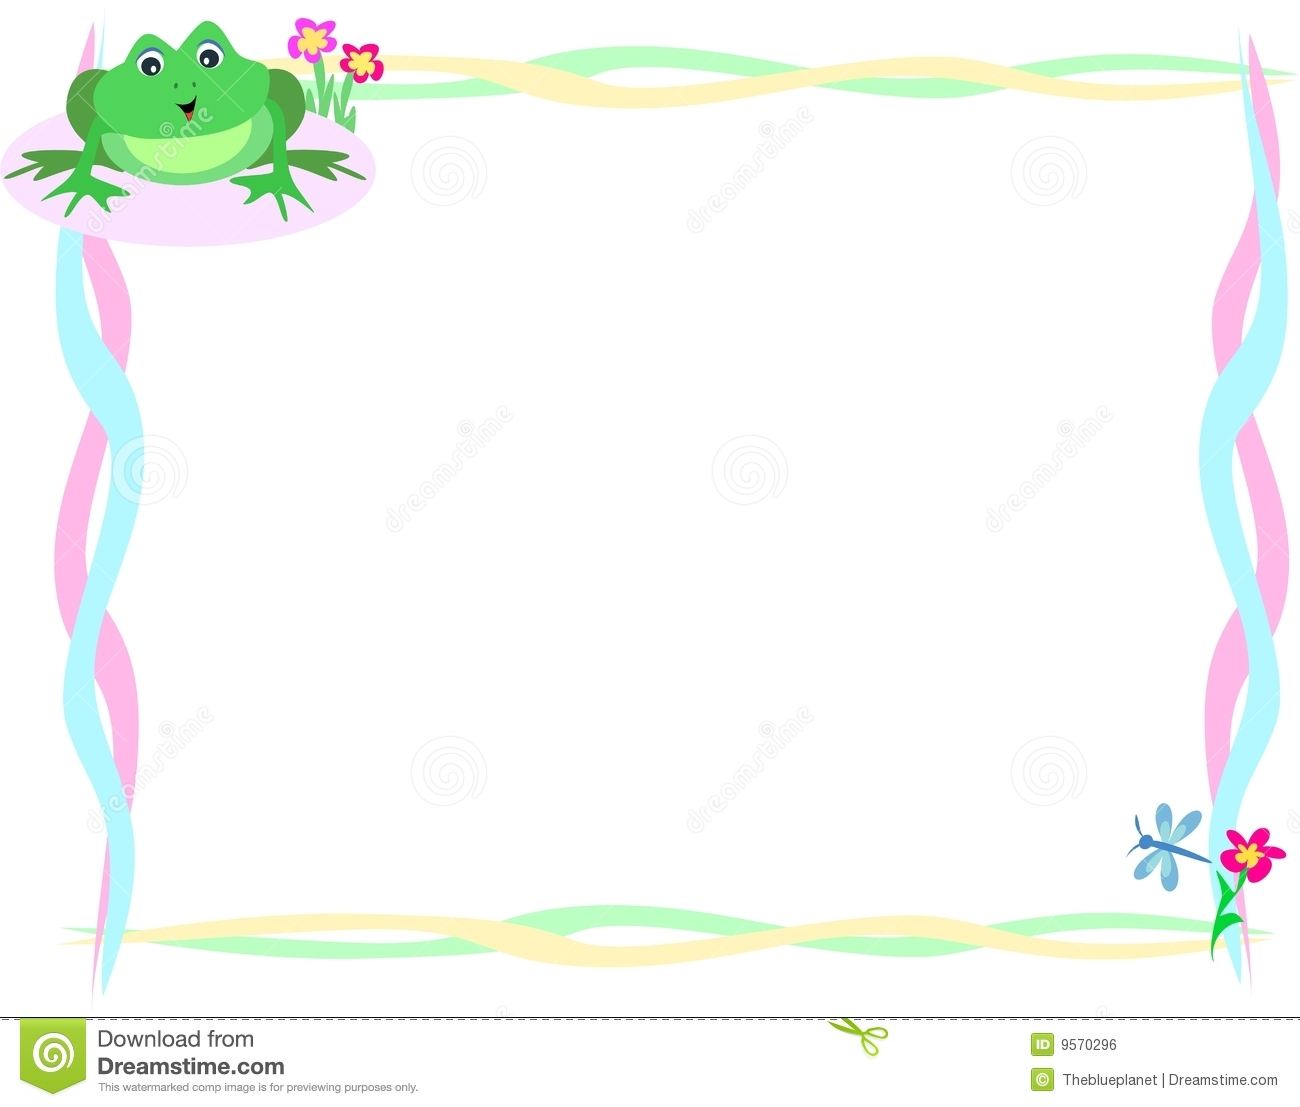 Frame Of Cute Frog And Dragonfly Royalty Free Stock Image